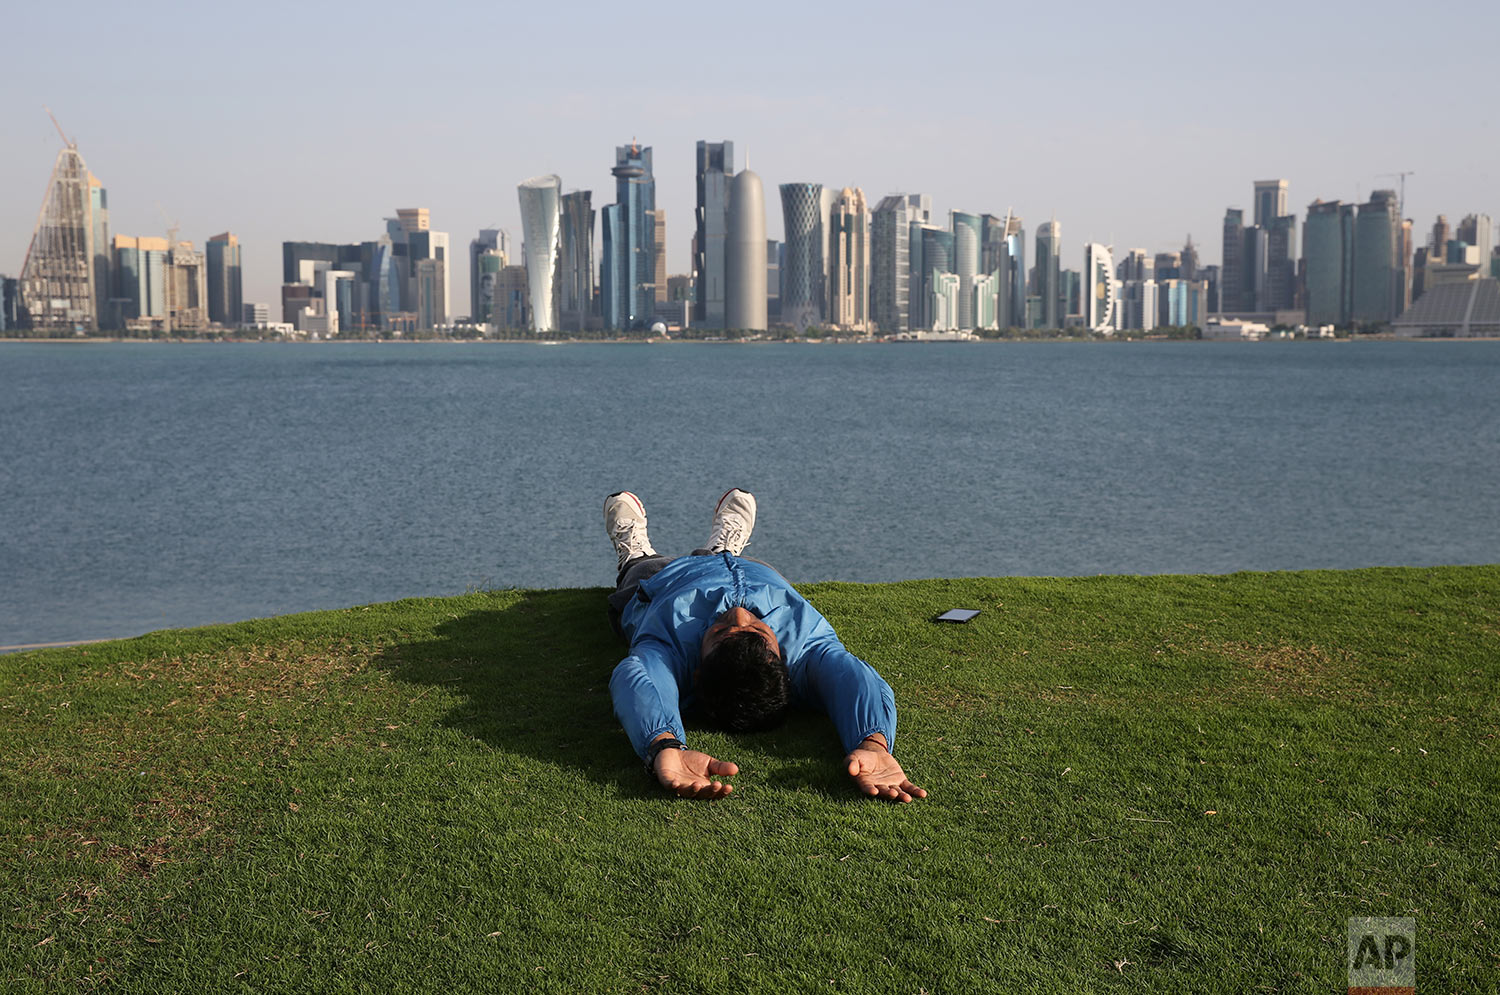 In this Friday, April 19, 2019 photo, a man takes a relax moment on a grass covered hill at the MIA park, overlooking to the skyline of Doha, Qatar. (AP Photo/Kamran Jebreili)